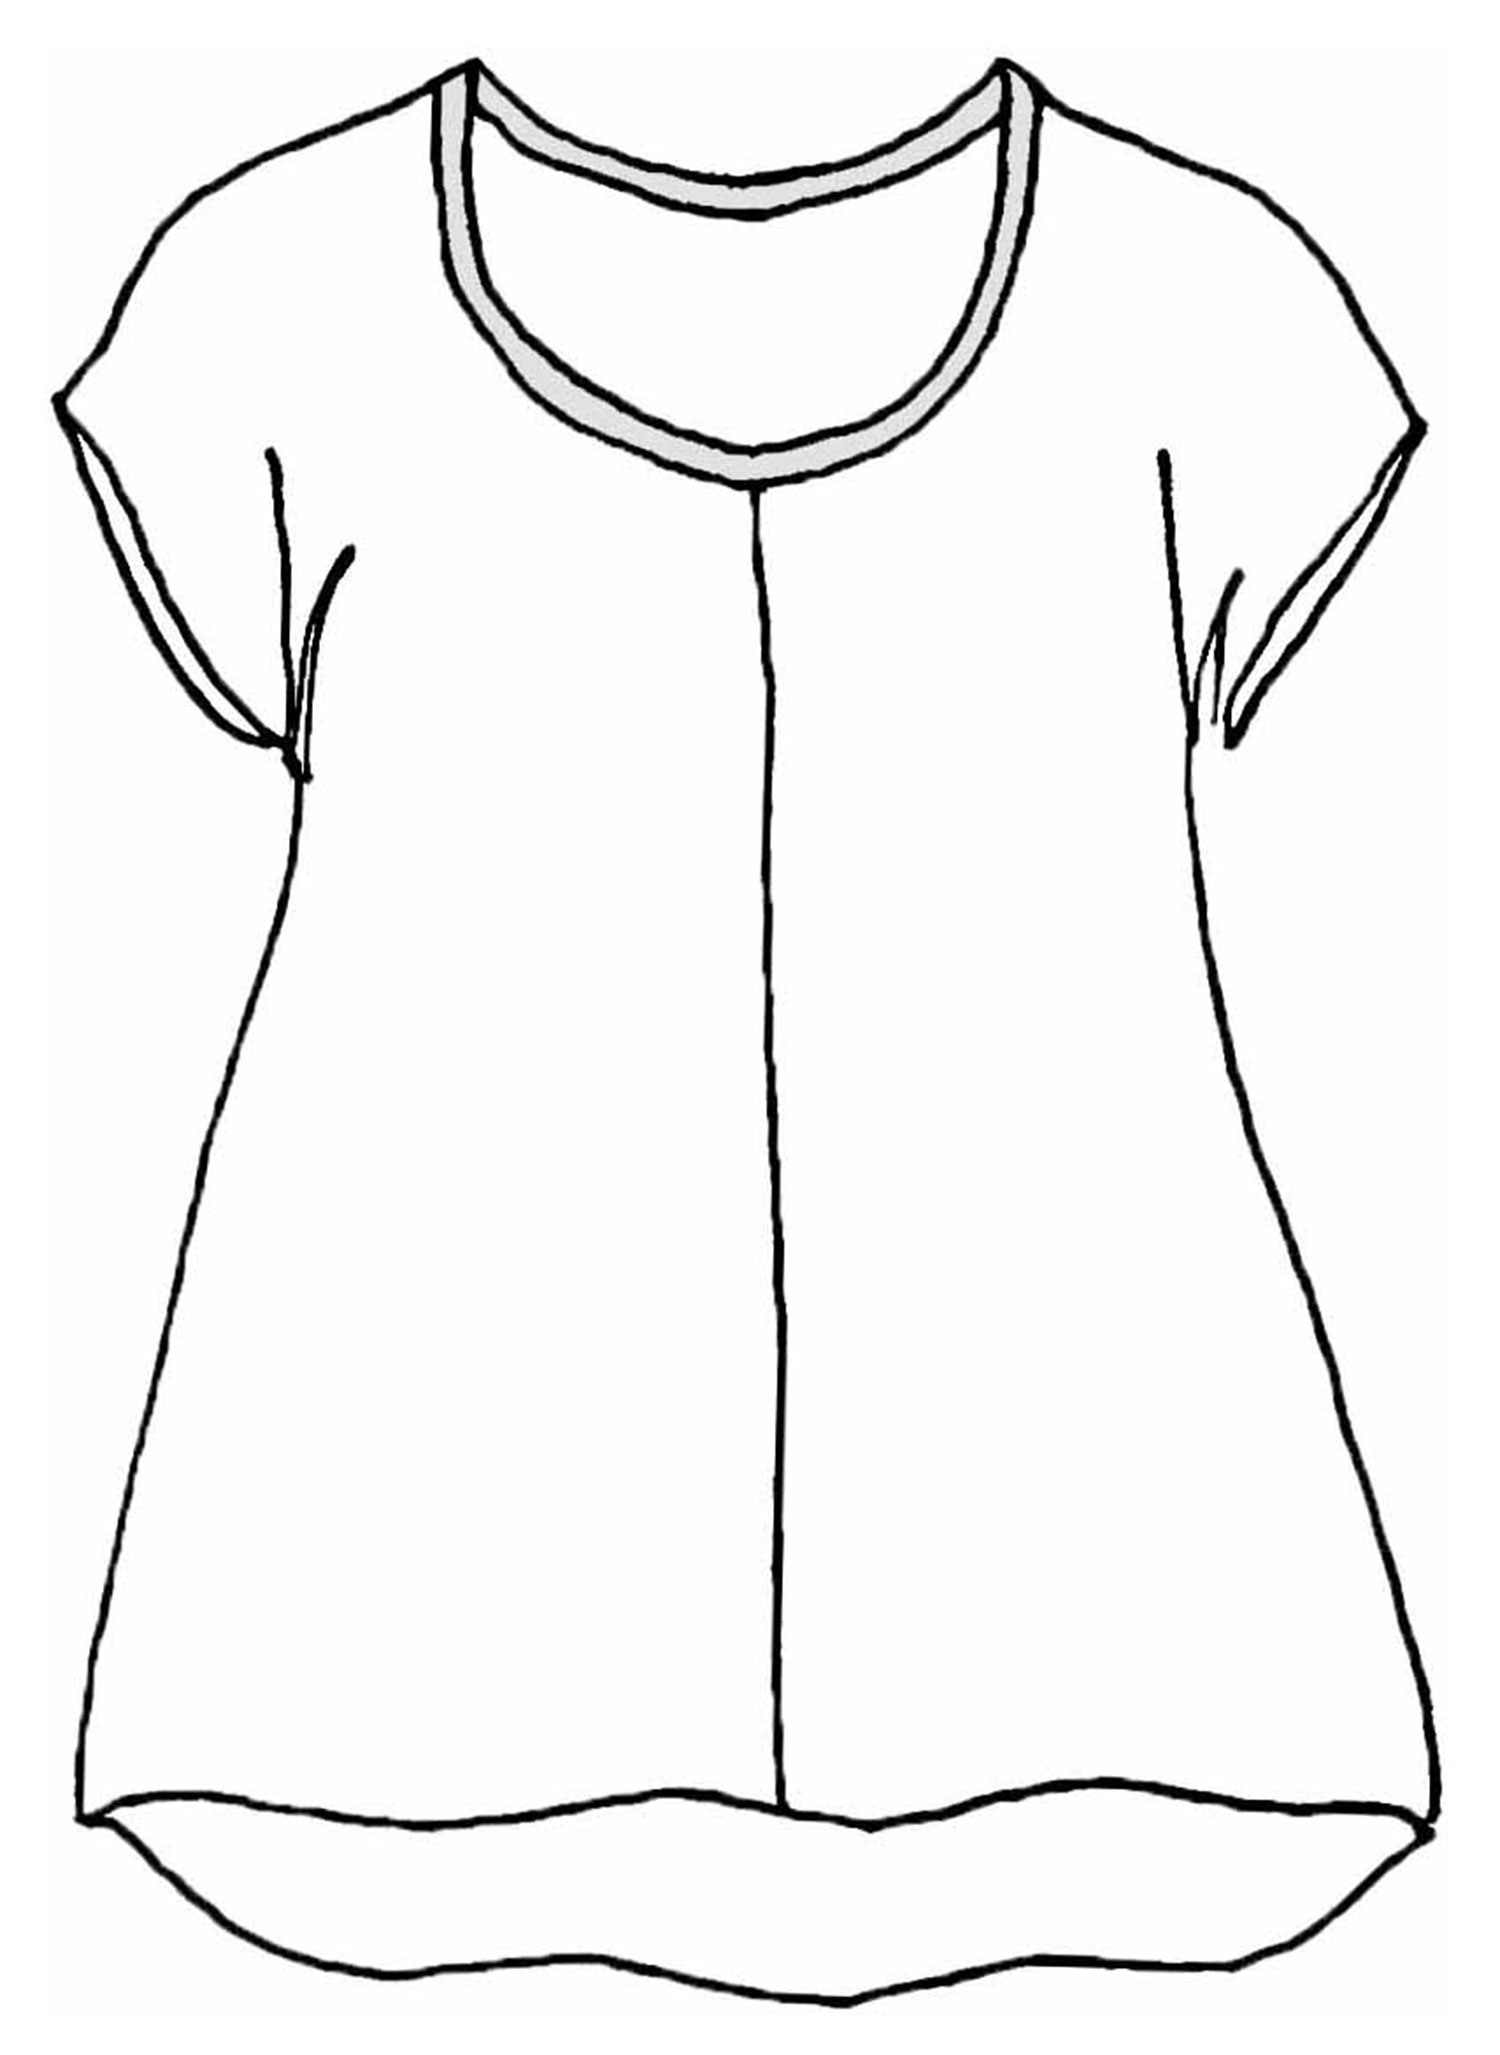 Feather Tee sketch image